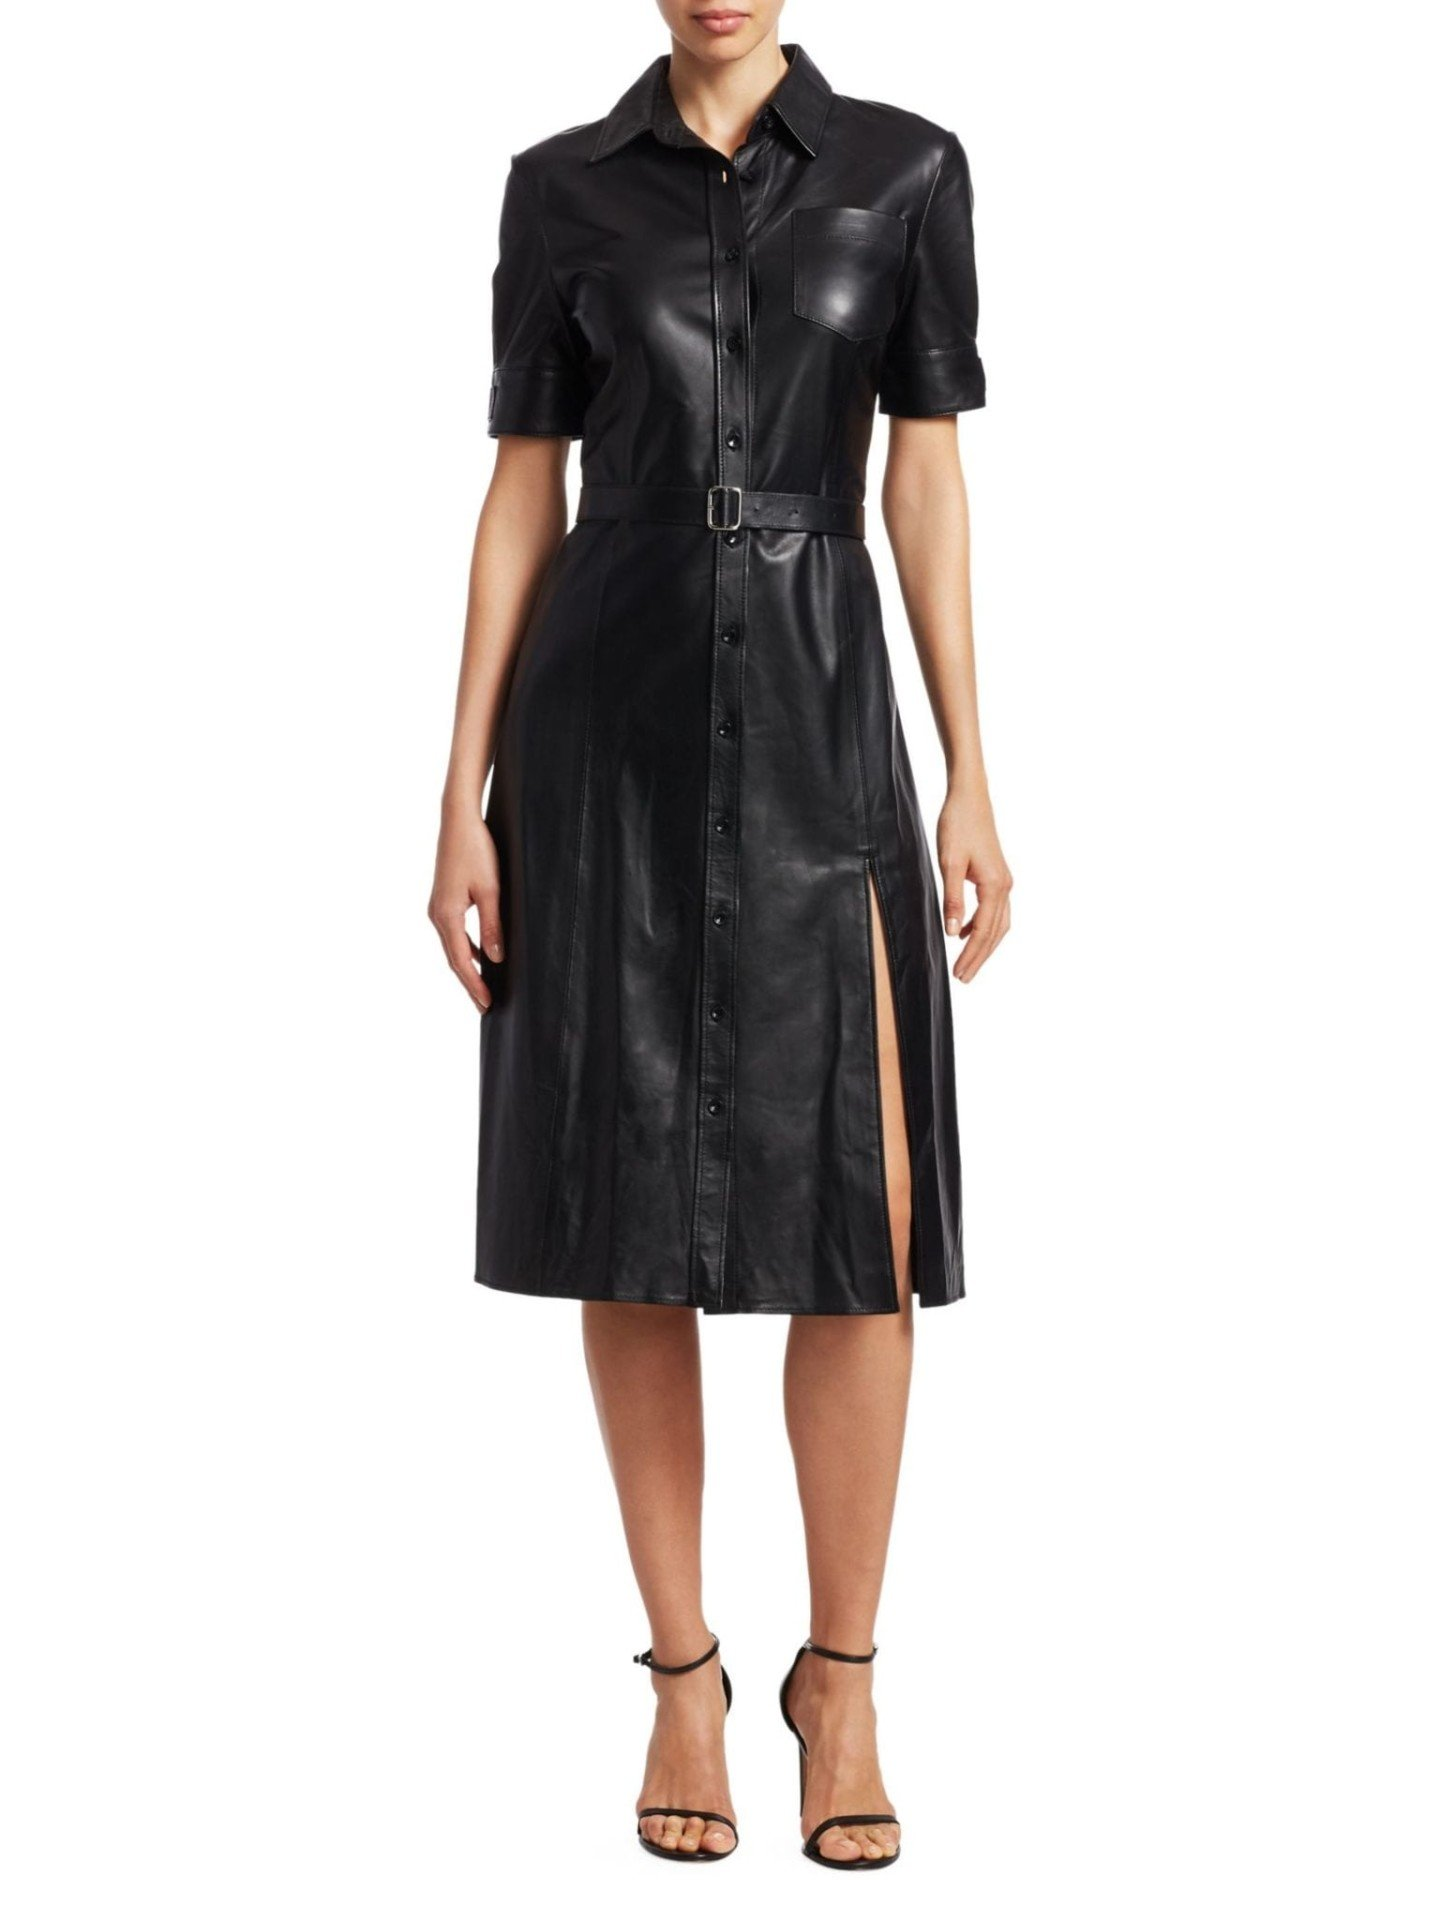 ALTUZARRA Kieran Leather Shirt Black Dress